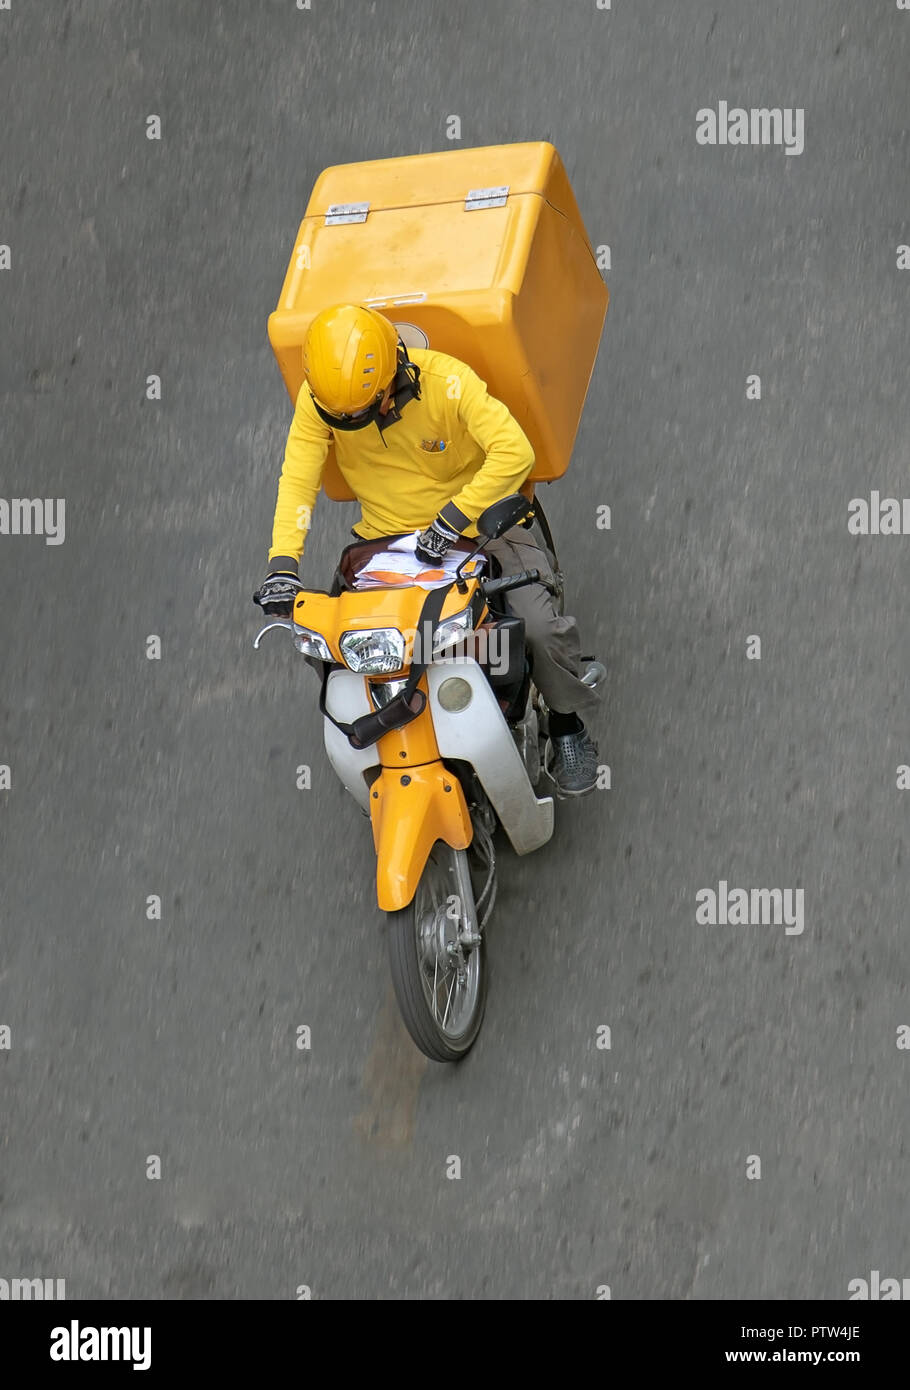 Delivery of consignments on motorbike. Motorcyclist rides with delivery in the large yellow box on street Ho Chi Minh city - Stock Image